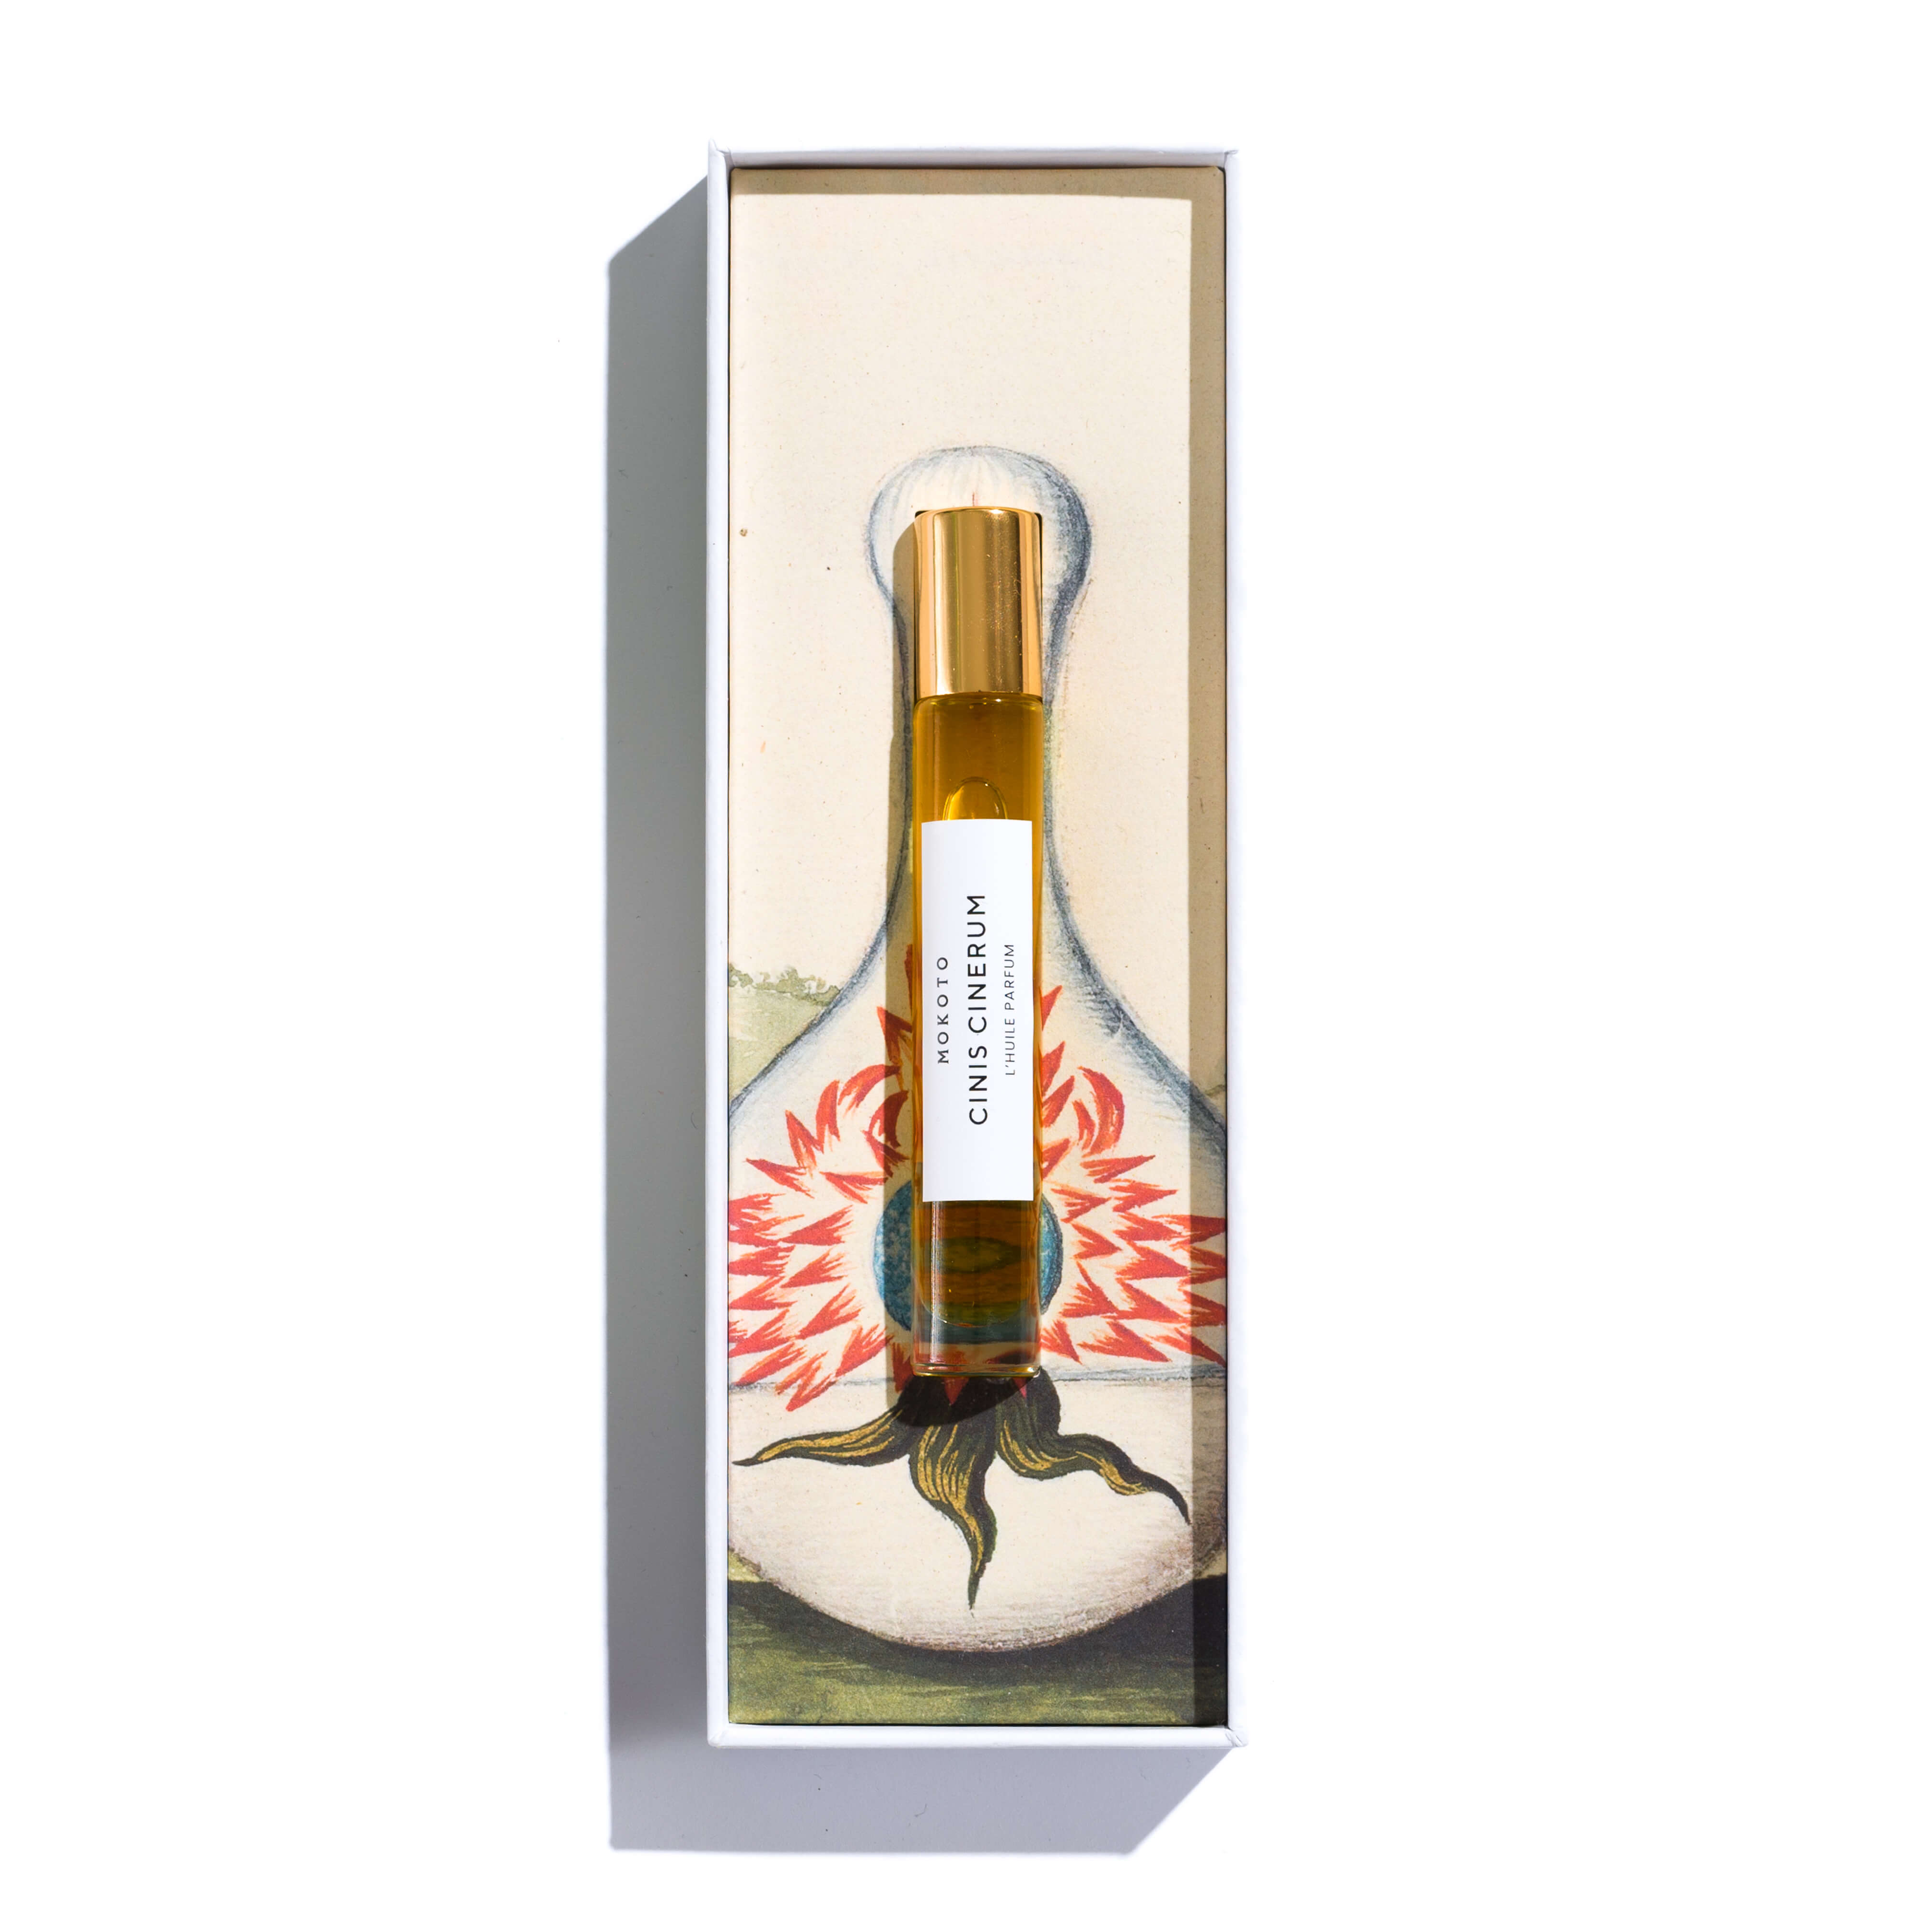 Cinis Cinerum Perfume Oil